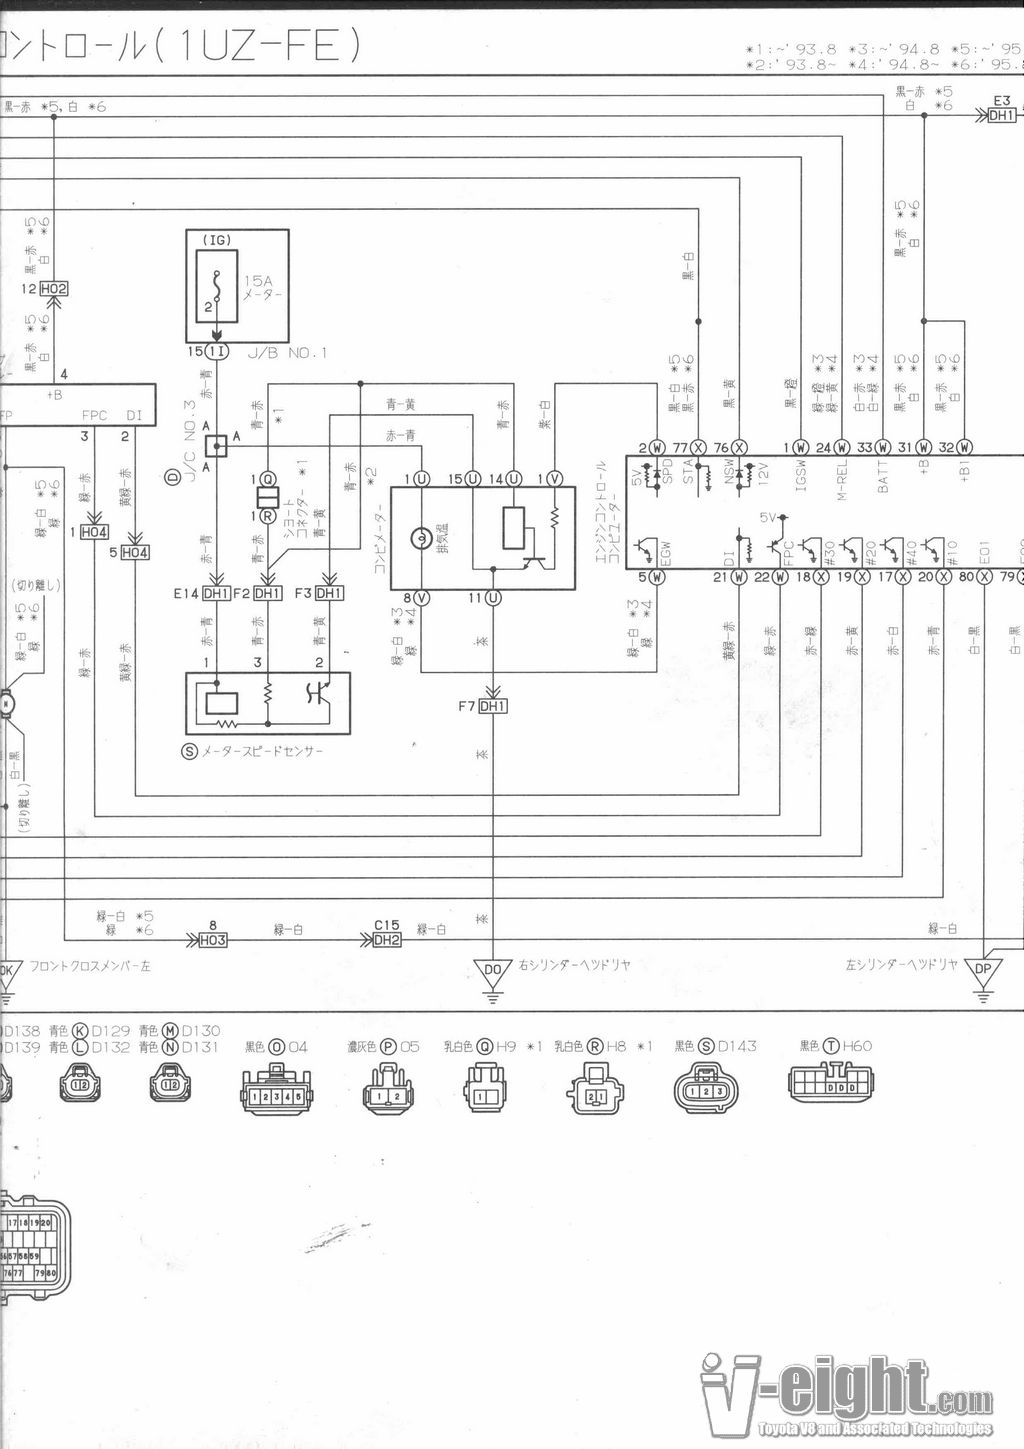 1994 toyota celica stereo wiring diagram evinrude ignition switch 1991 tercel free